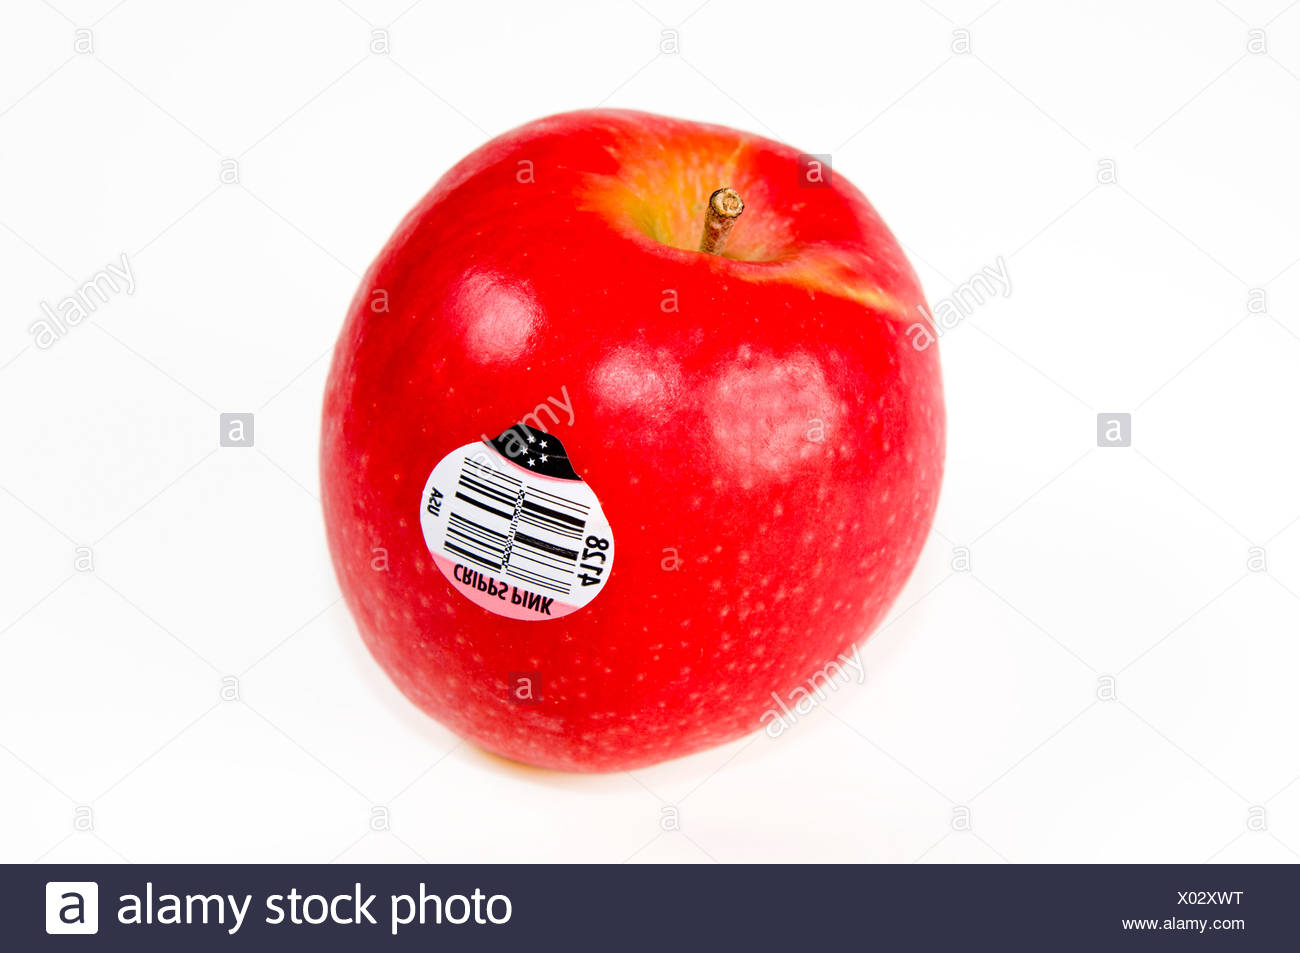 Pink Lady Stock Photos Amp Pink Lady Stock Images Alamy